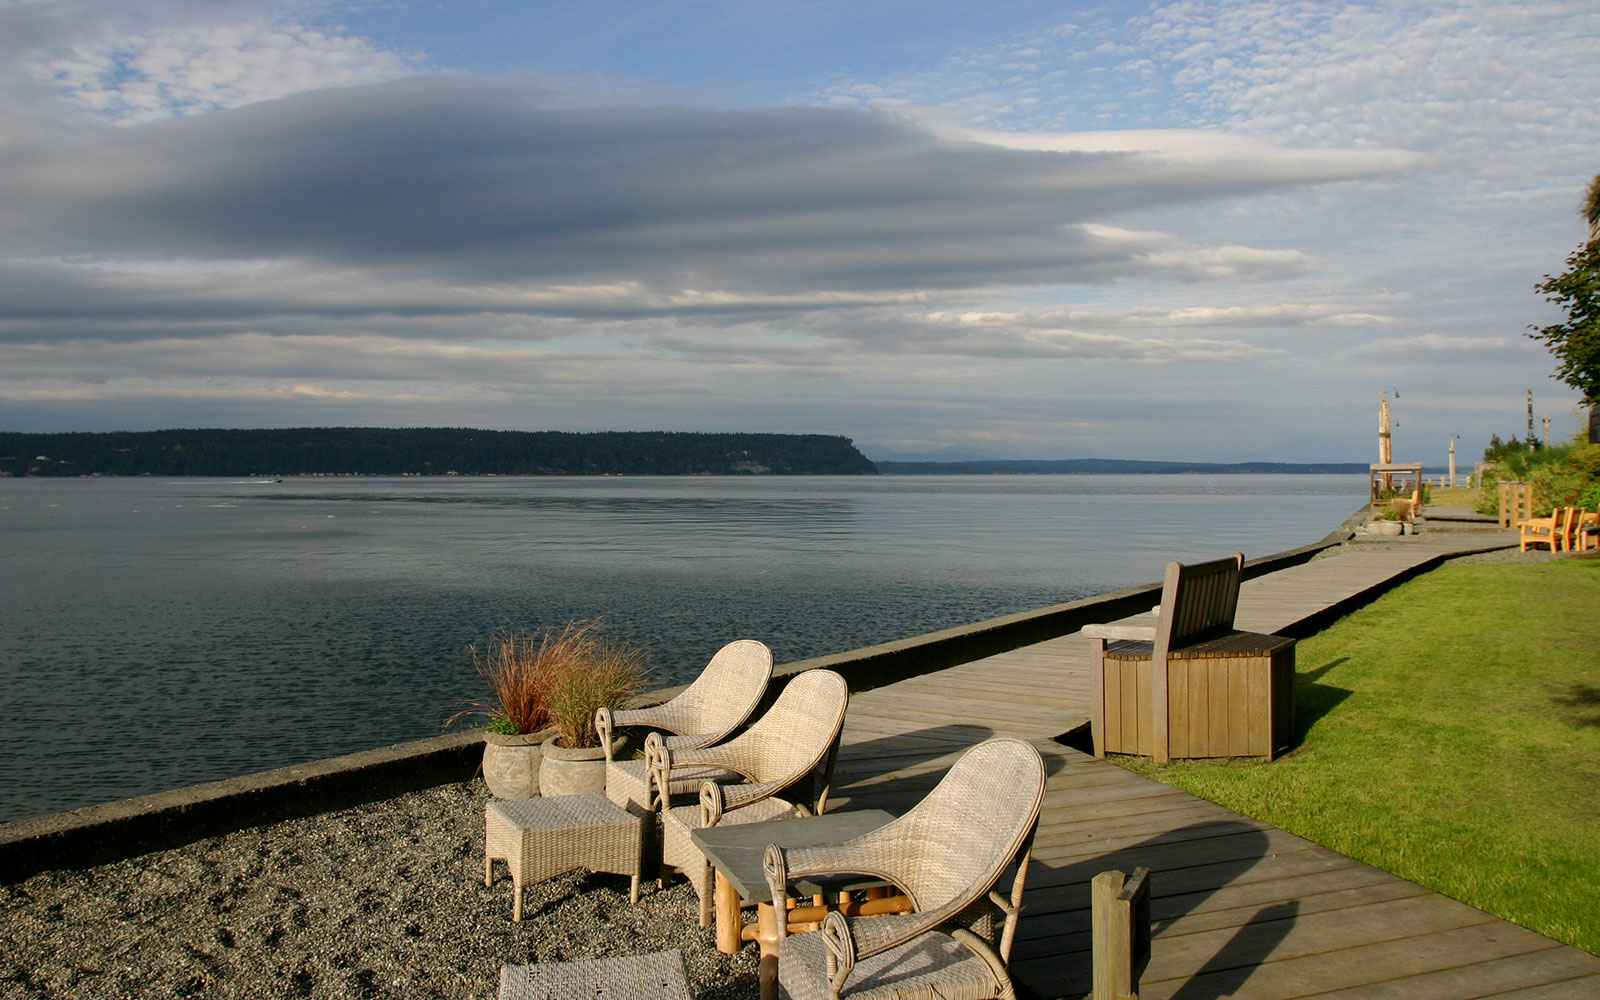 On the Waterfront: Whidbey Island, Washington